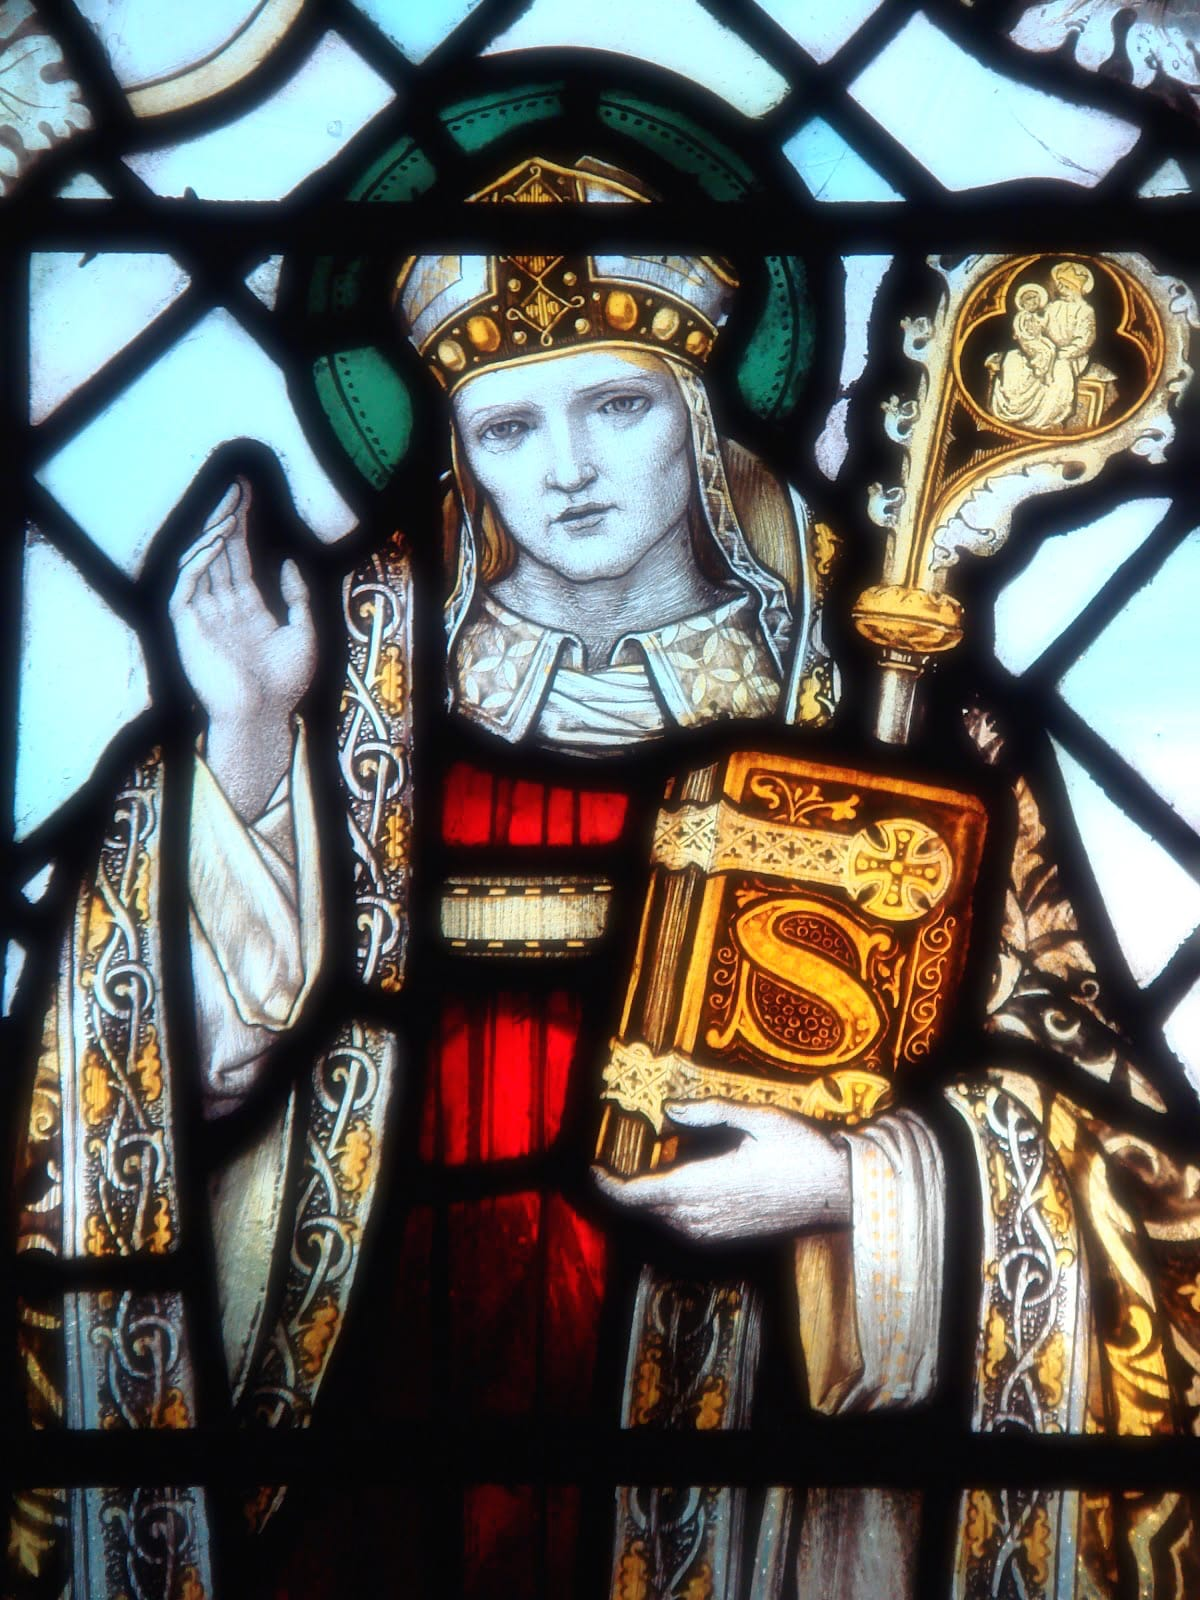 A stained glass depiction of St. Swithun